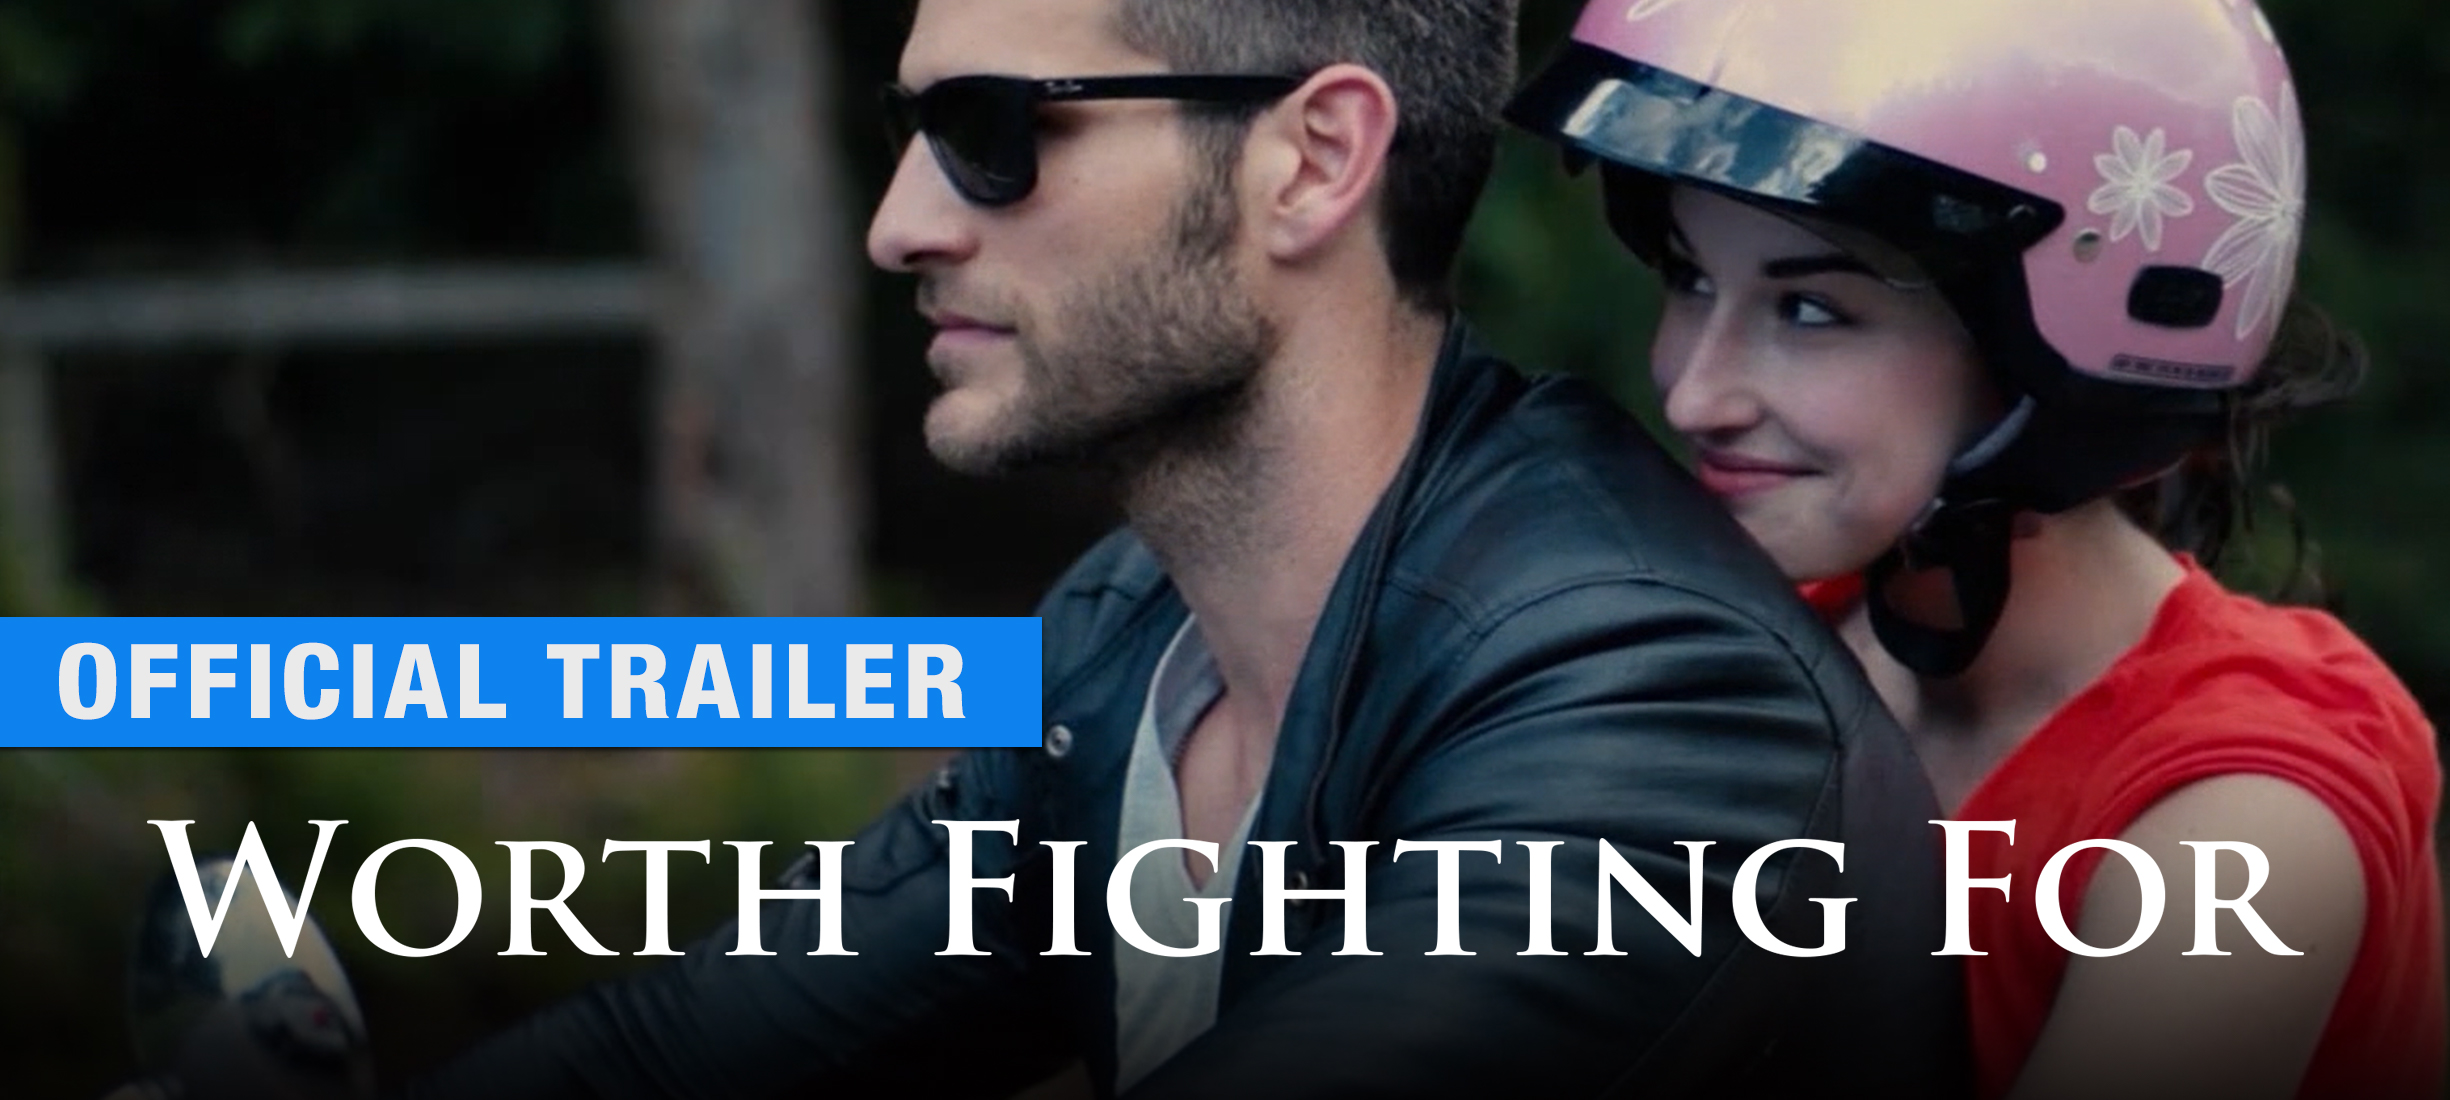 Worth Fighting For: Trailer